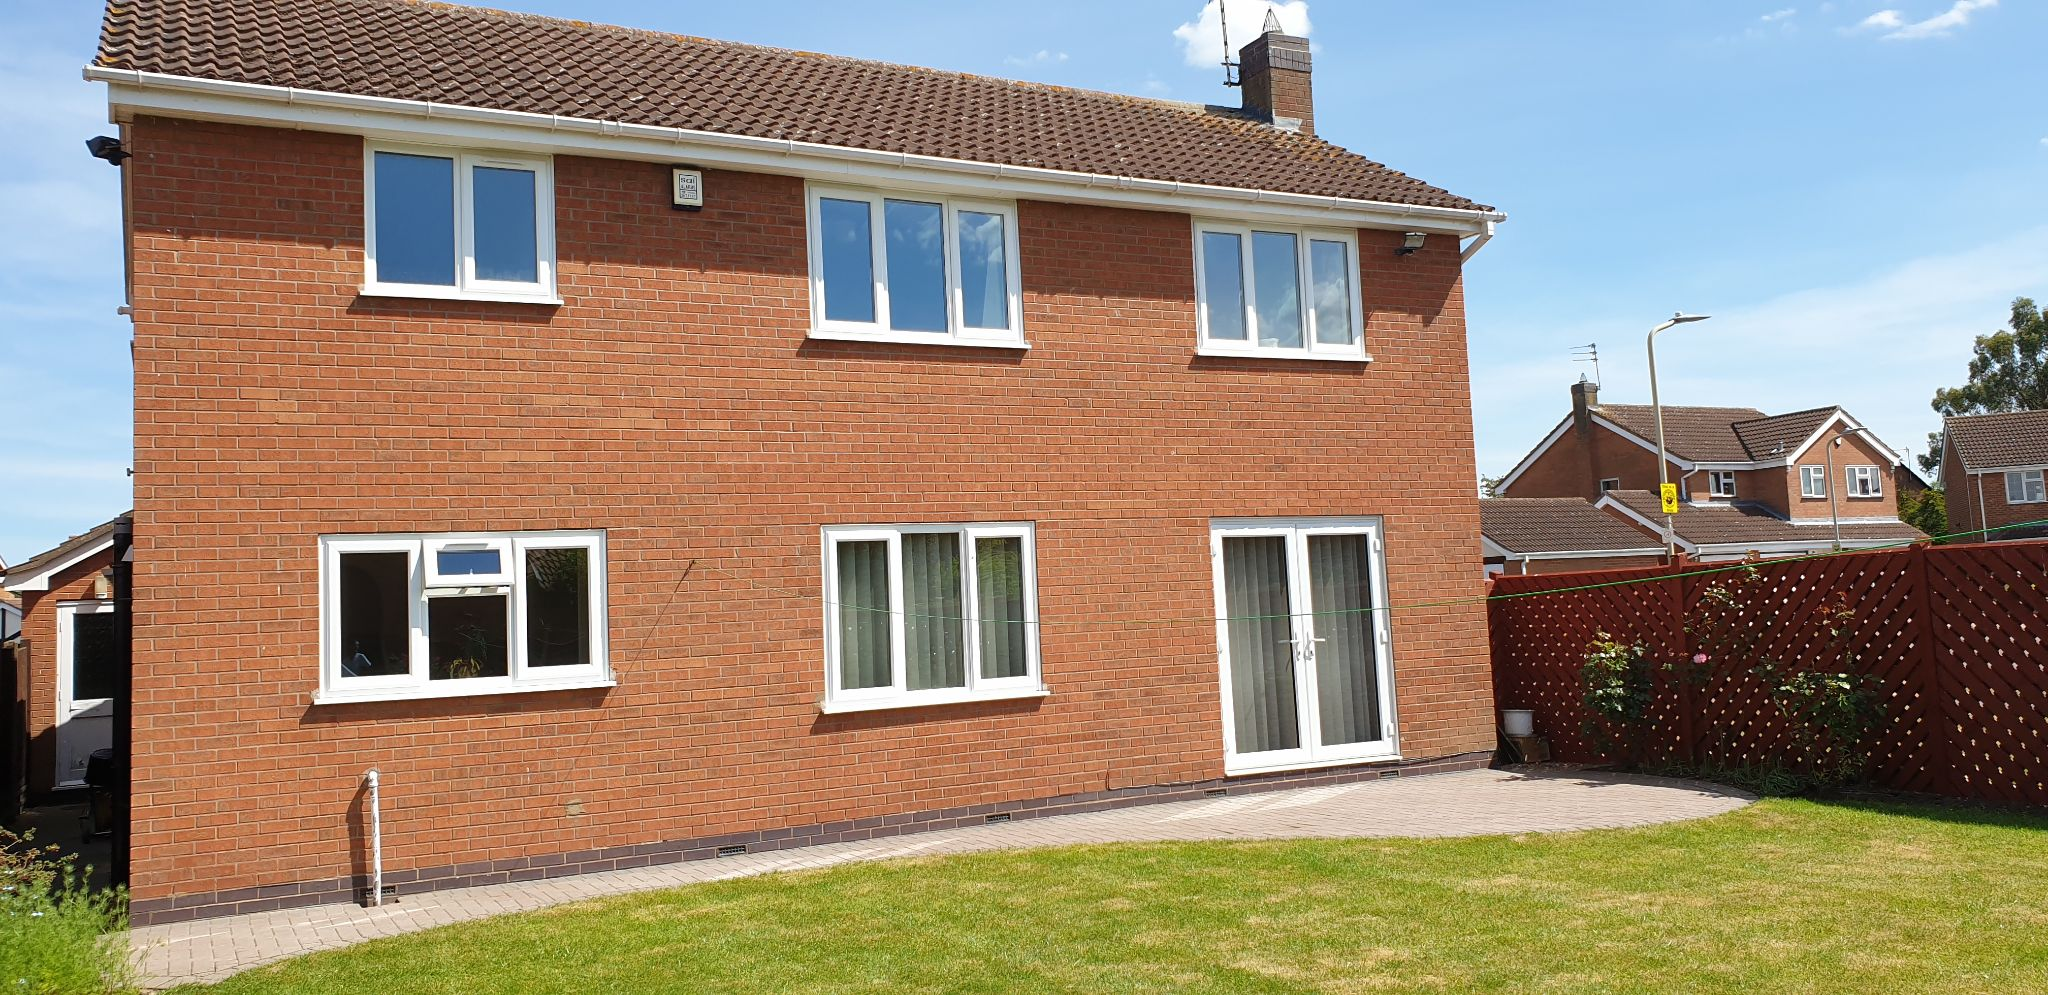 4 bedroom detached house For Sale in Leicester - Photograph 12.